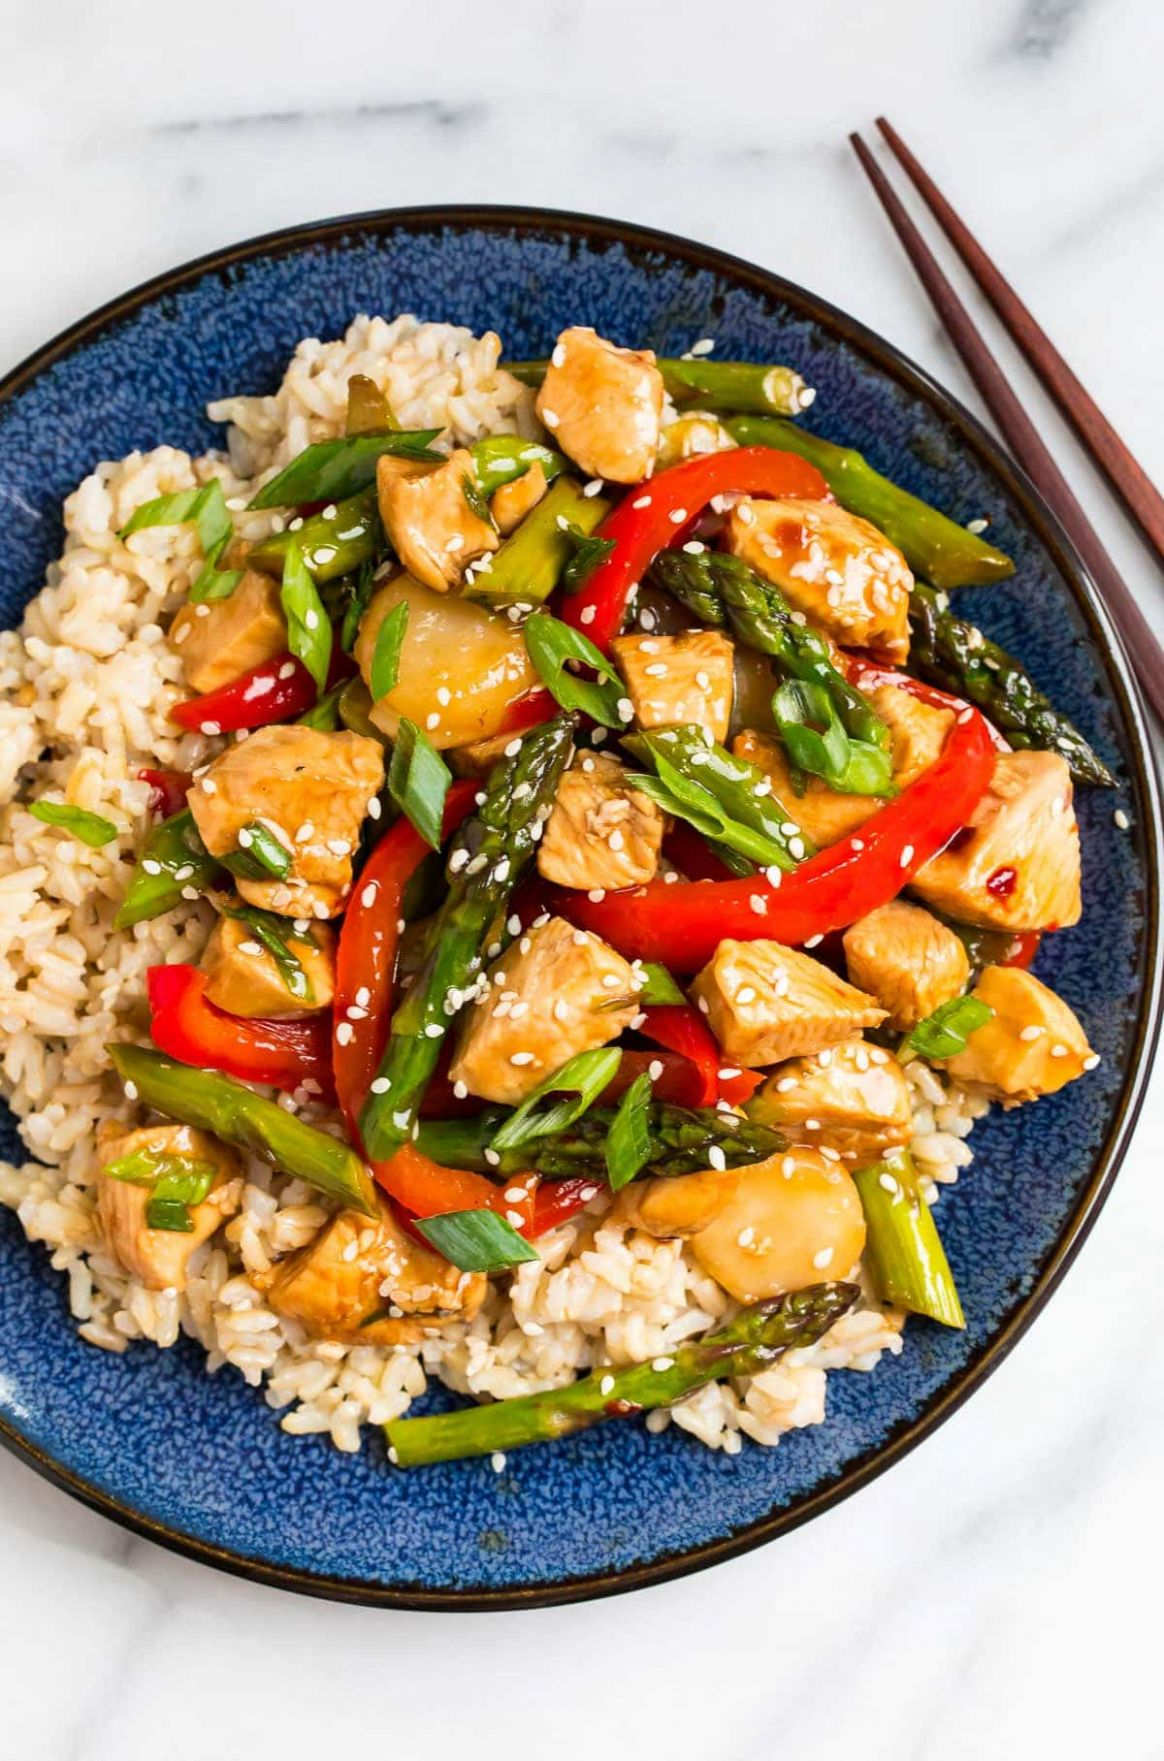 Teriyaki Chicken Stir Fry - Recipes Chicken Breast Stir Fry